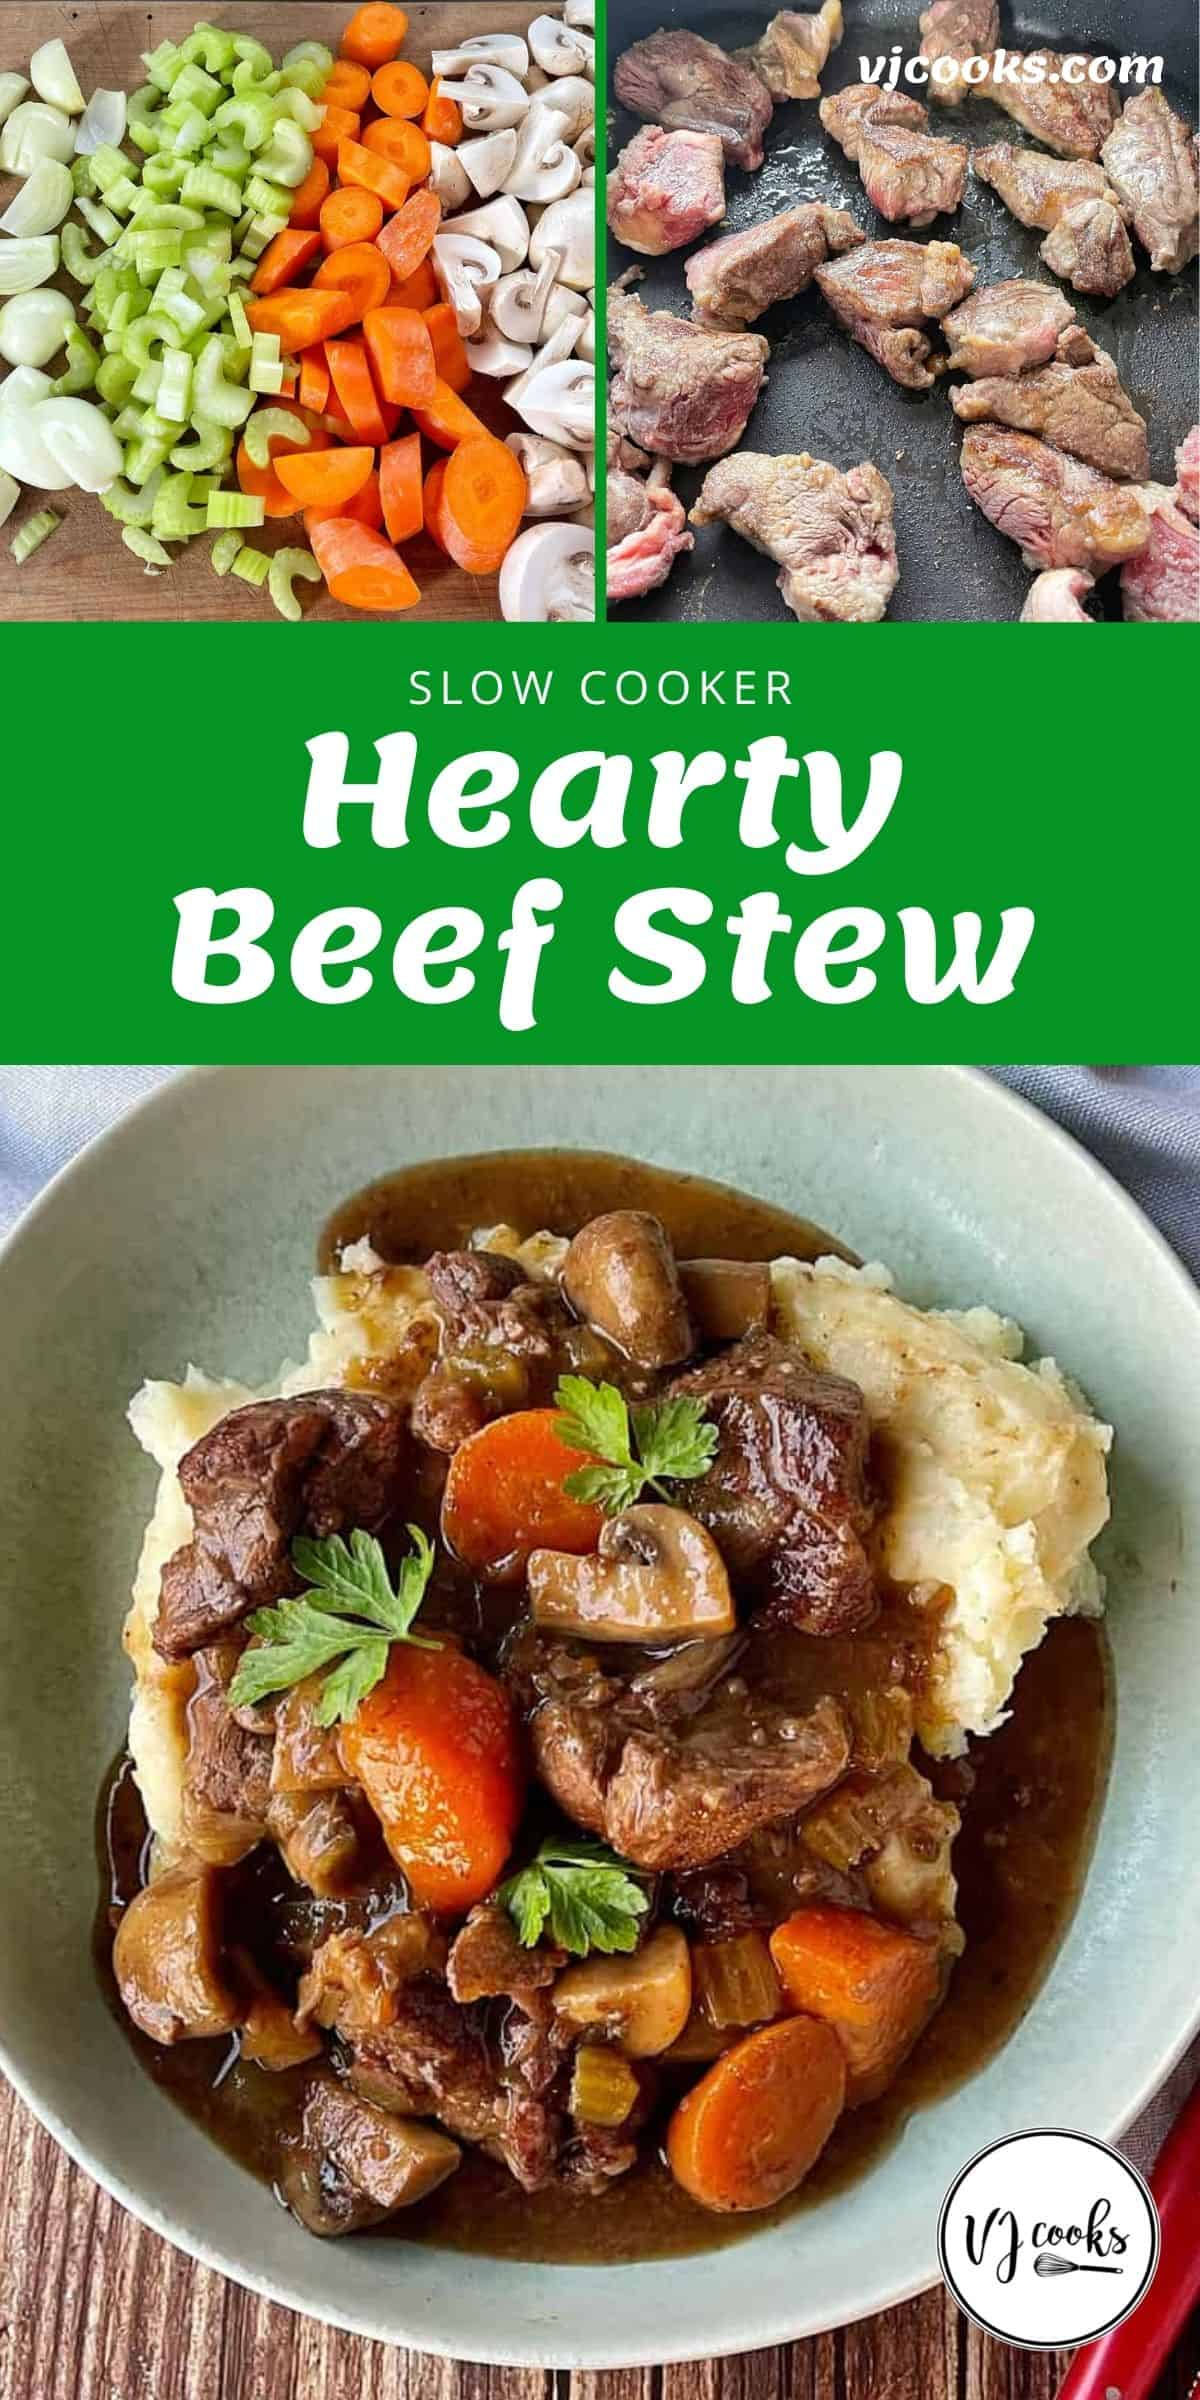 The process of making beef stew.